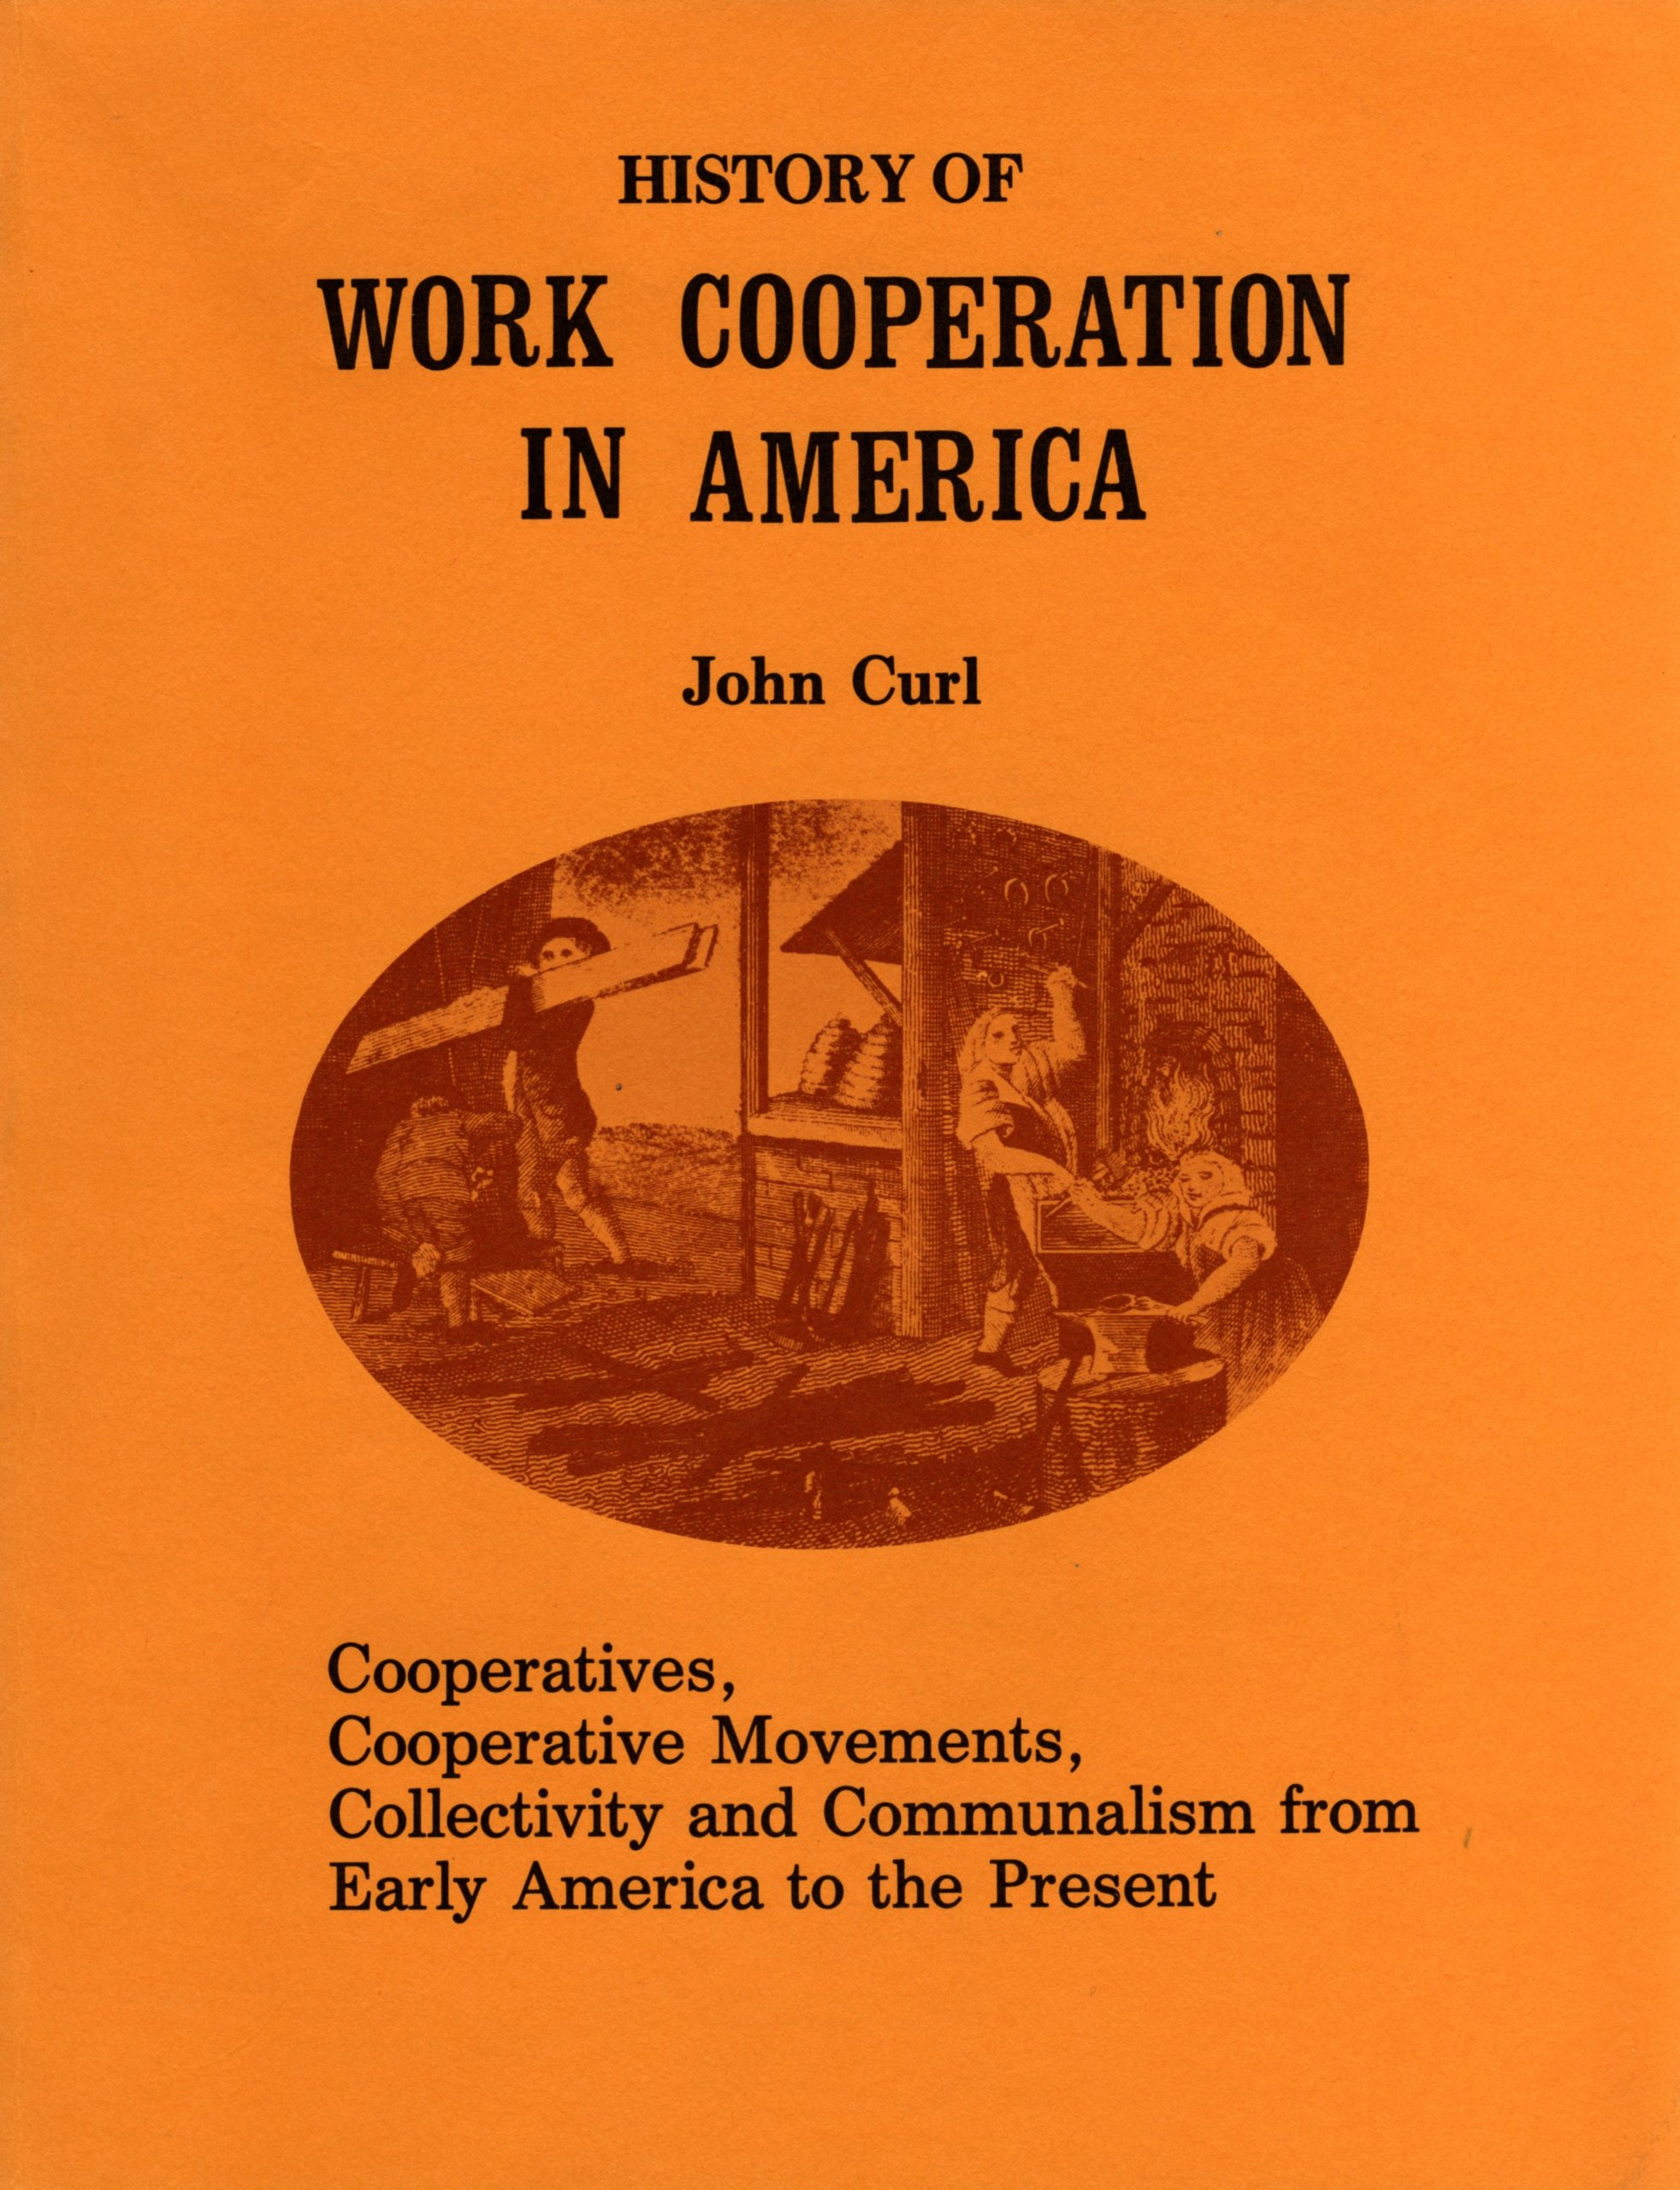 History of Work Cooperation in America